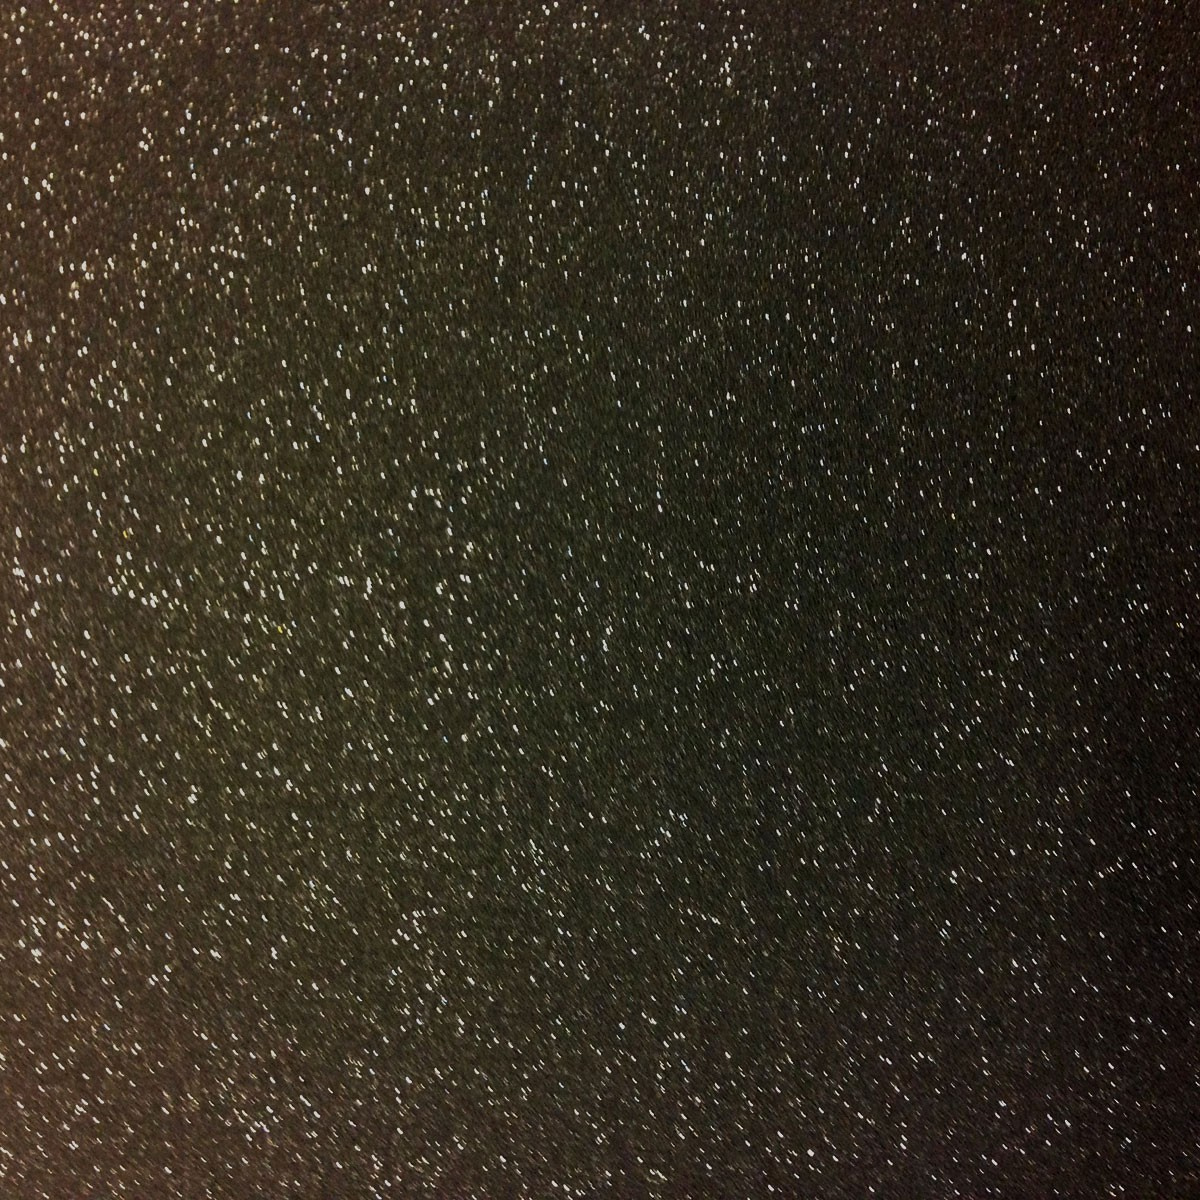 Black And Silver Glitter Wallpaper Wallpapersafari